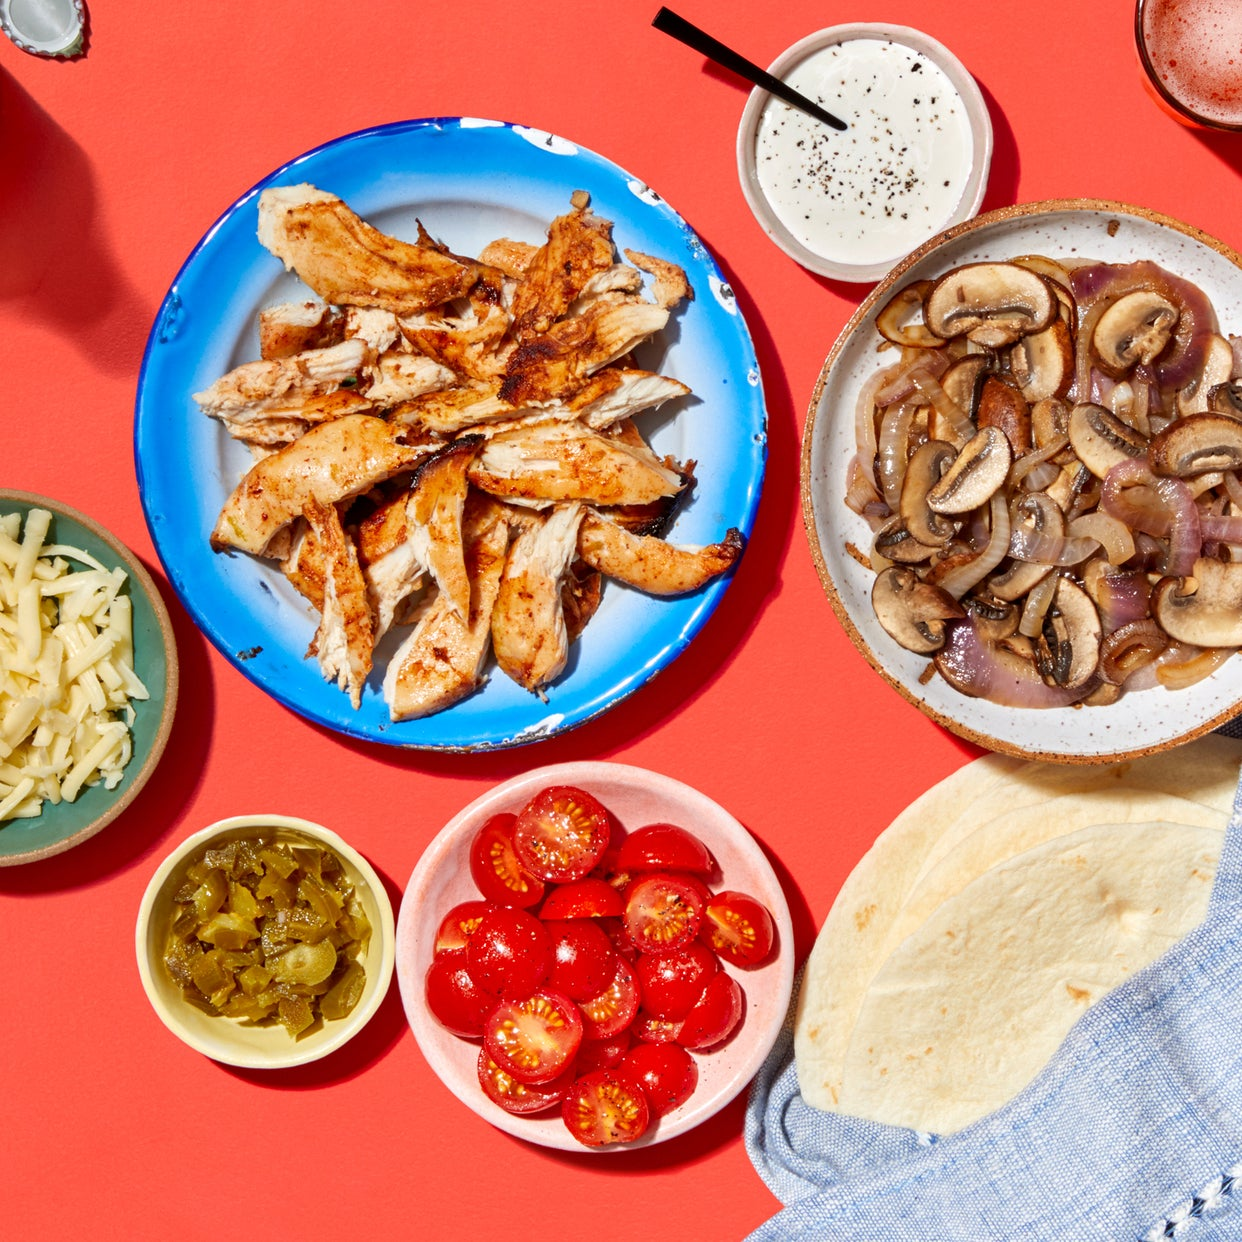 Chrissy Teigen's Chipotle-Lime Chicken Fajitas with Sautéed Mushrooms & Onion